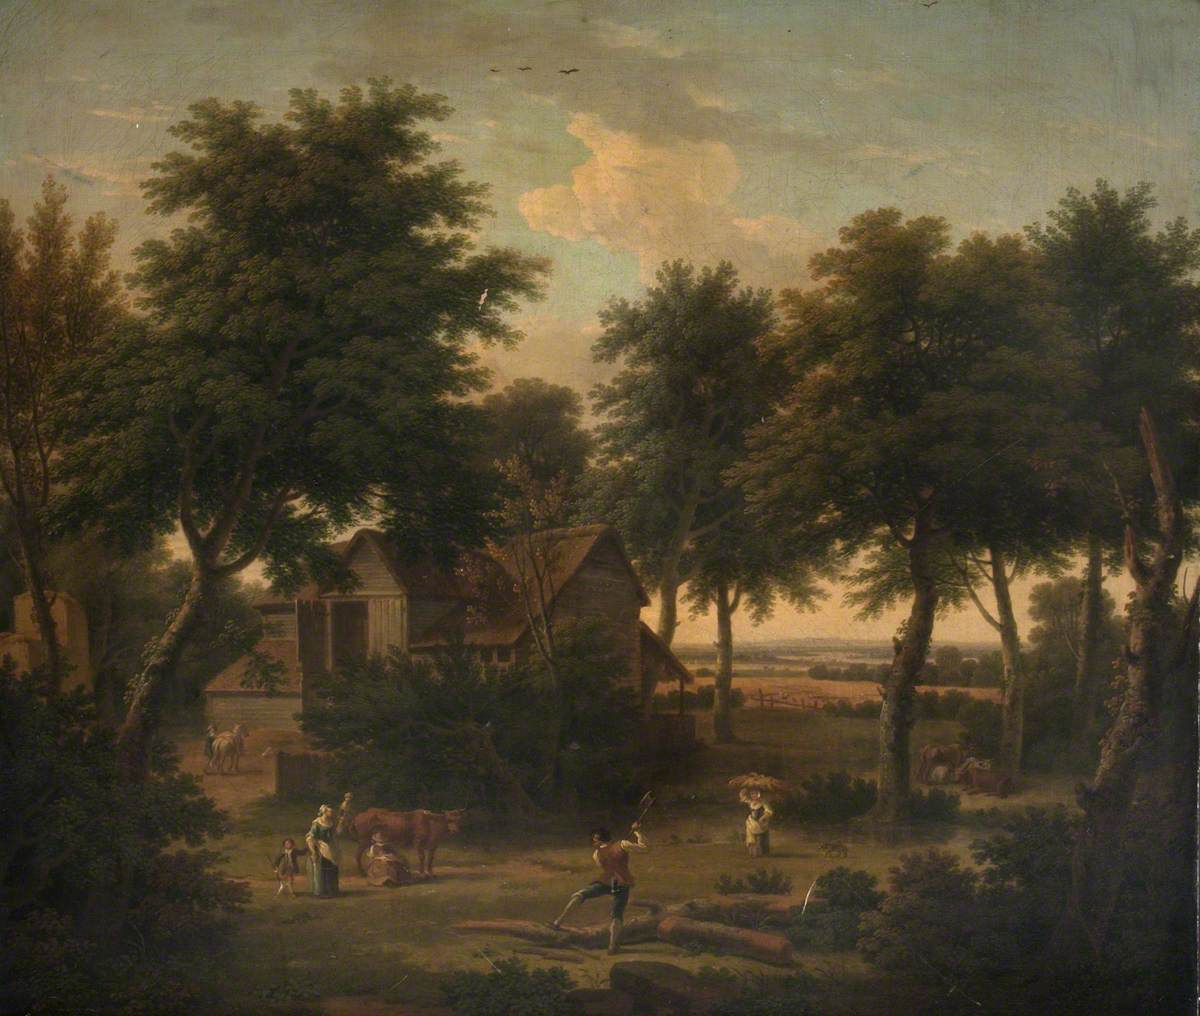 Farmstead with Figures Working